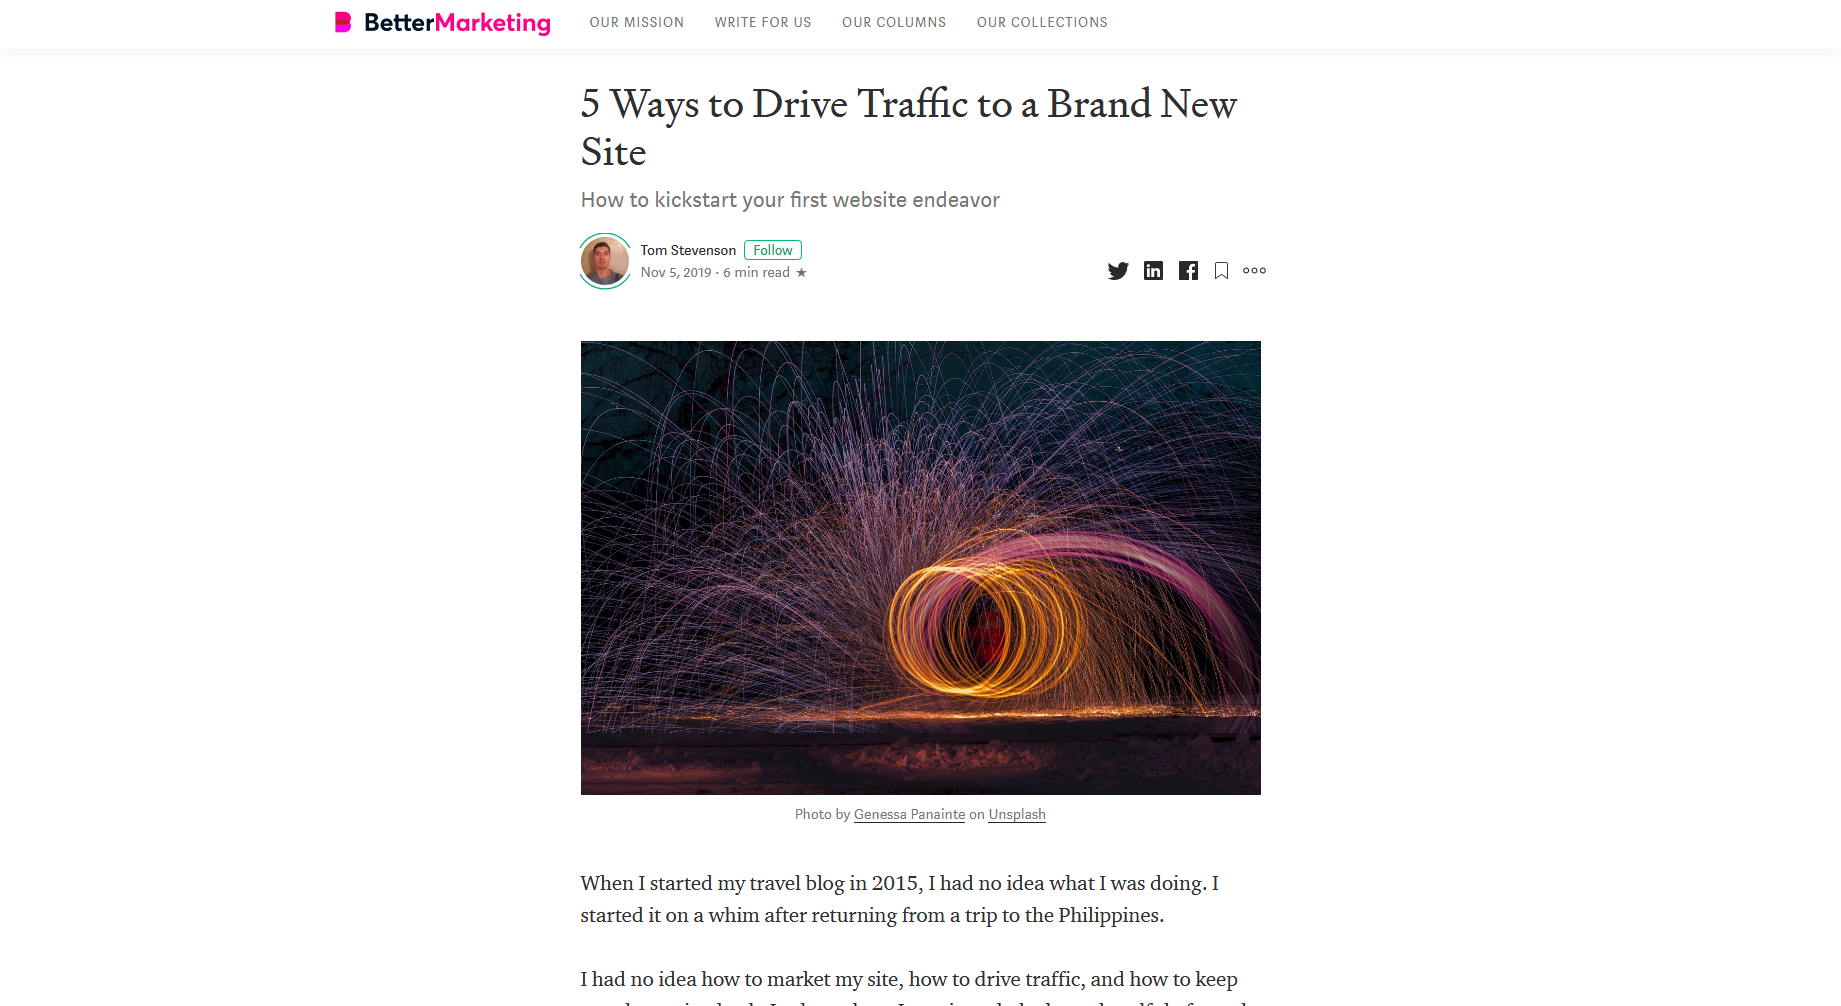 5 Ways to Drive Traffic to a Brand New Site